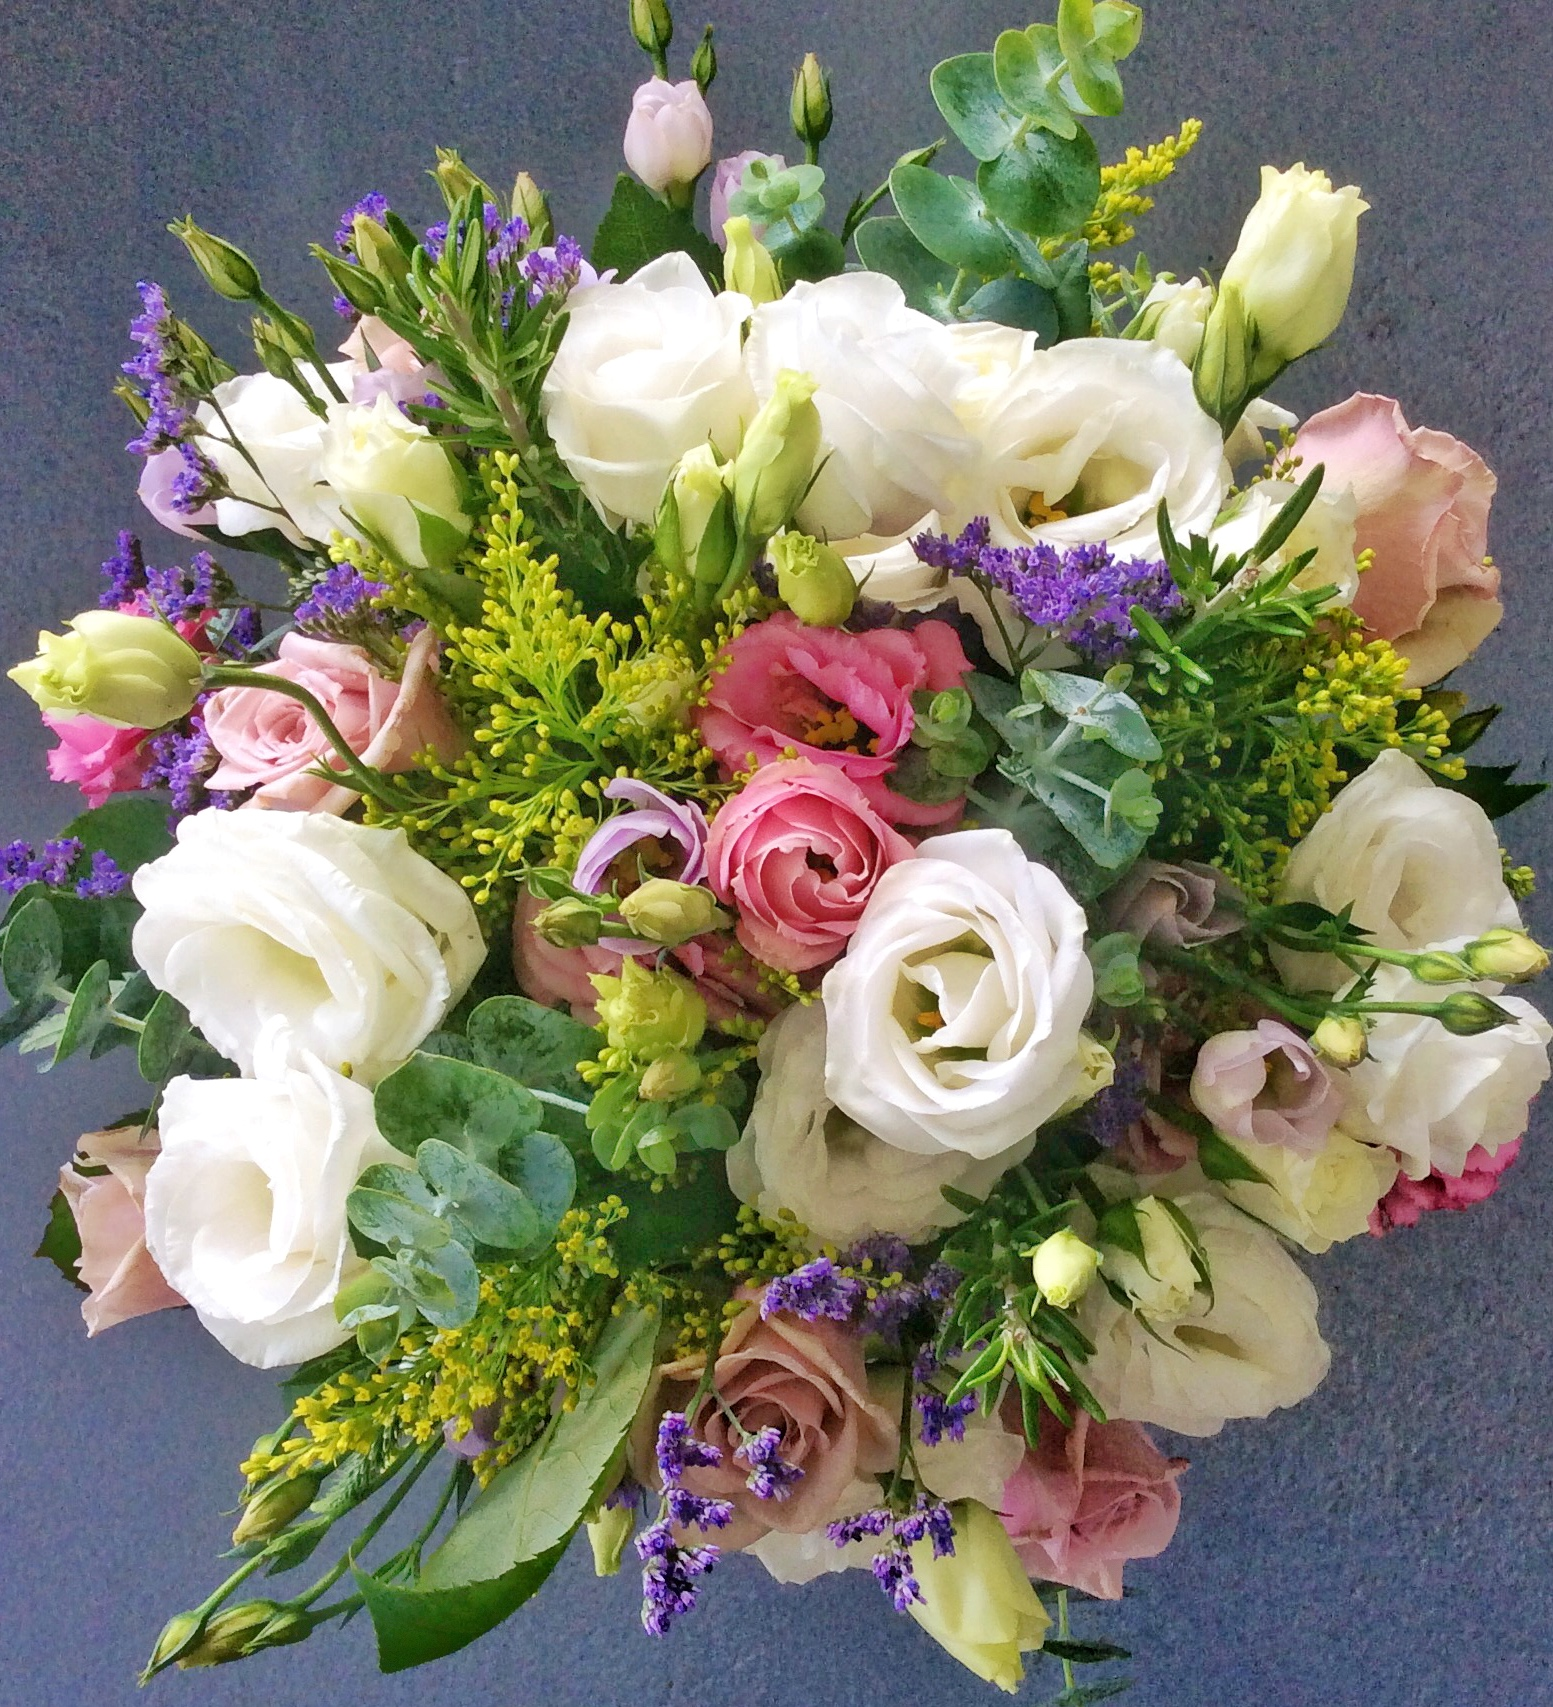 Funeral flowers supplier in Millwater